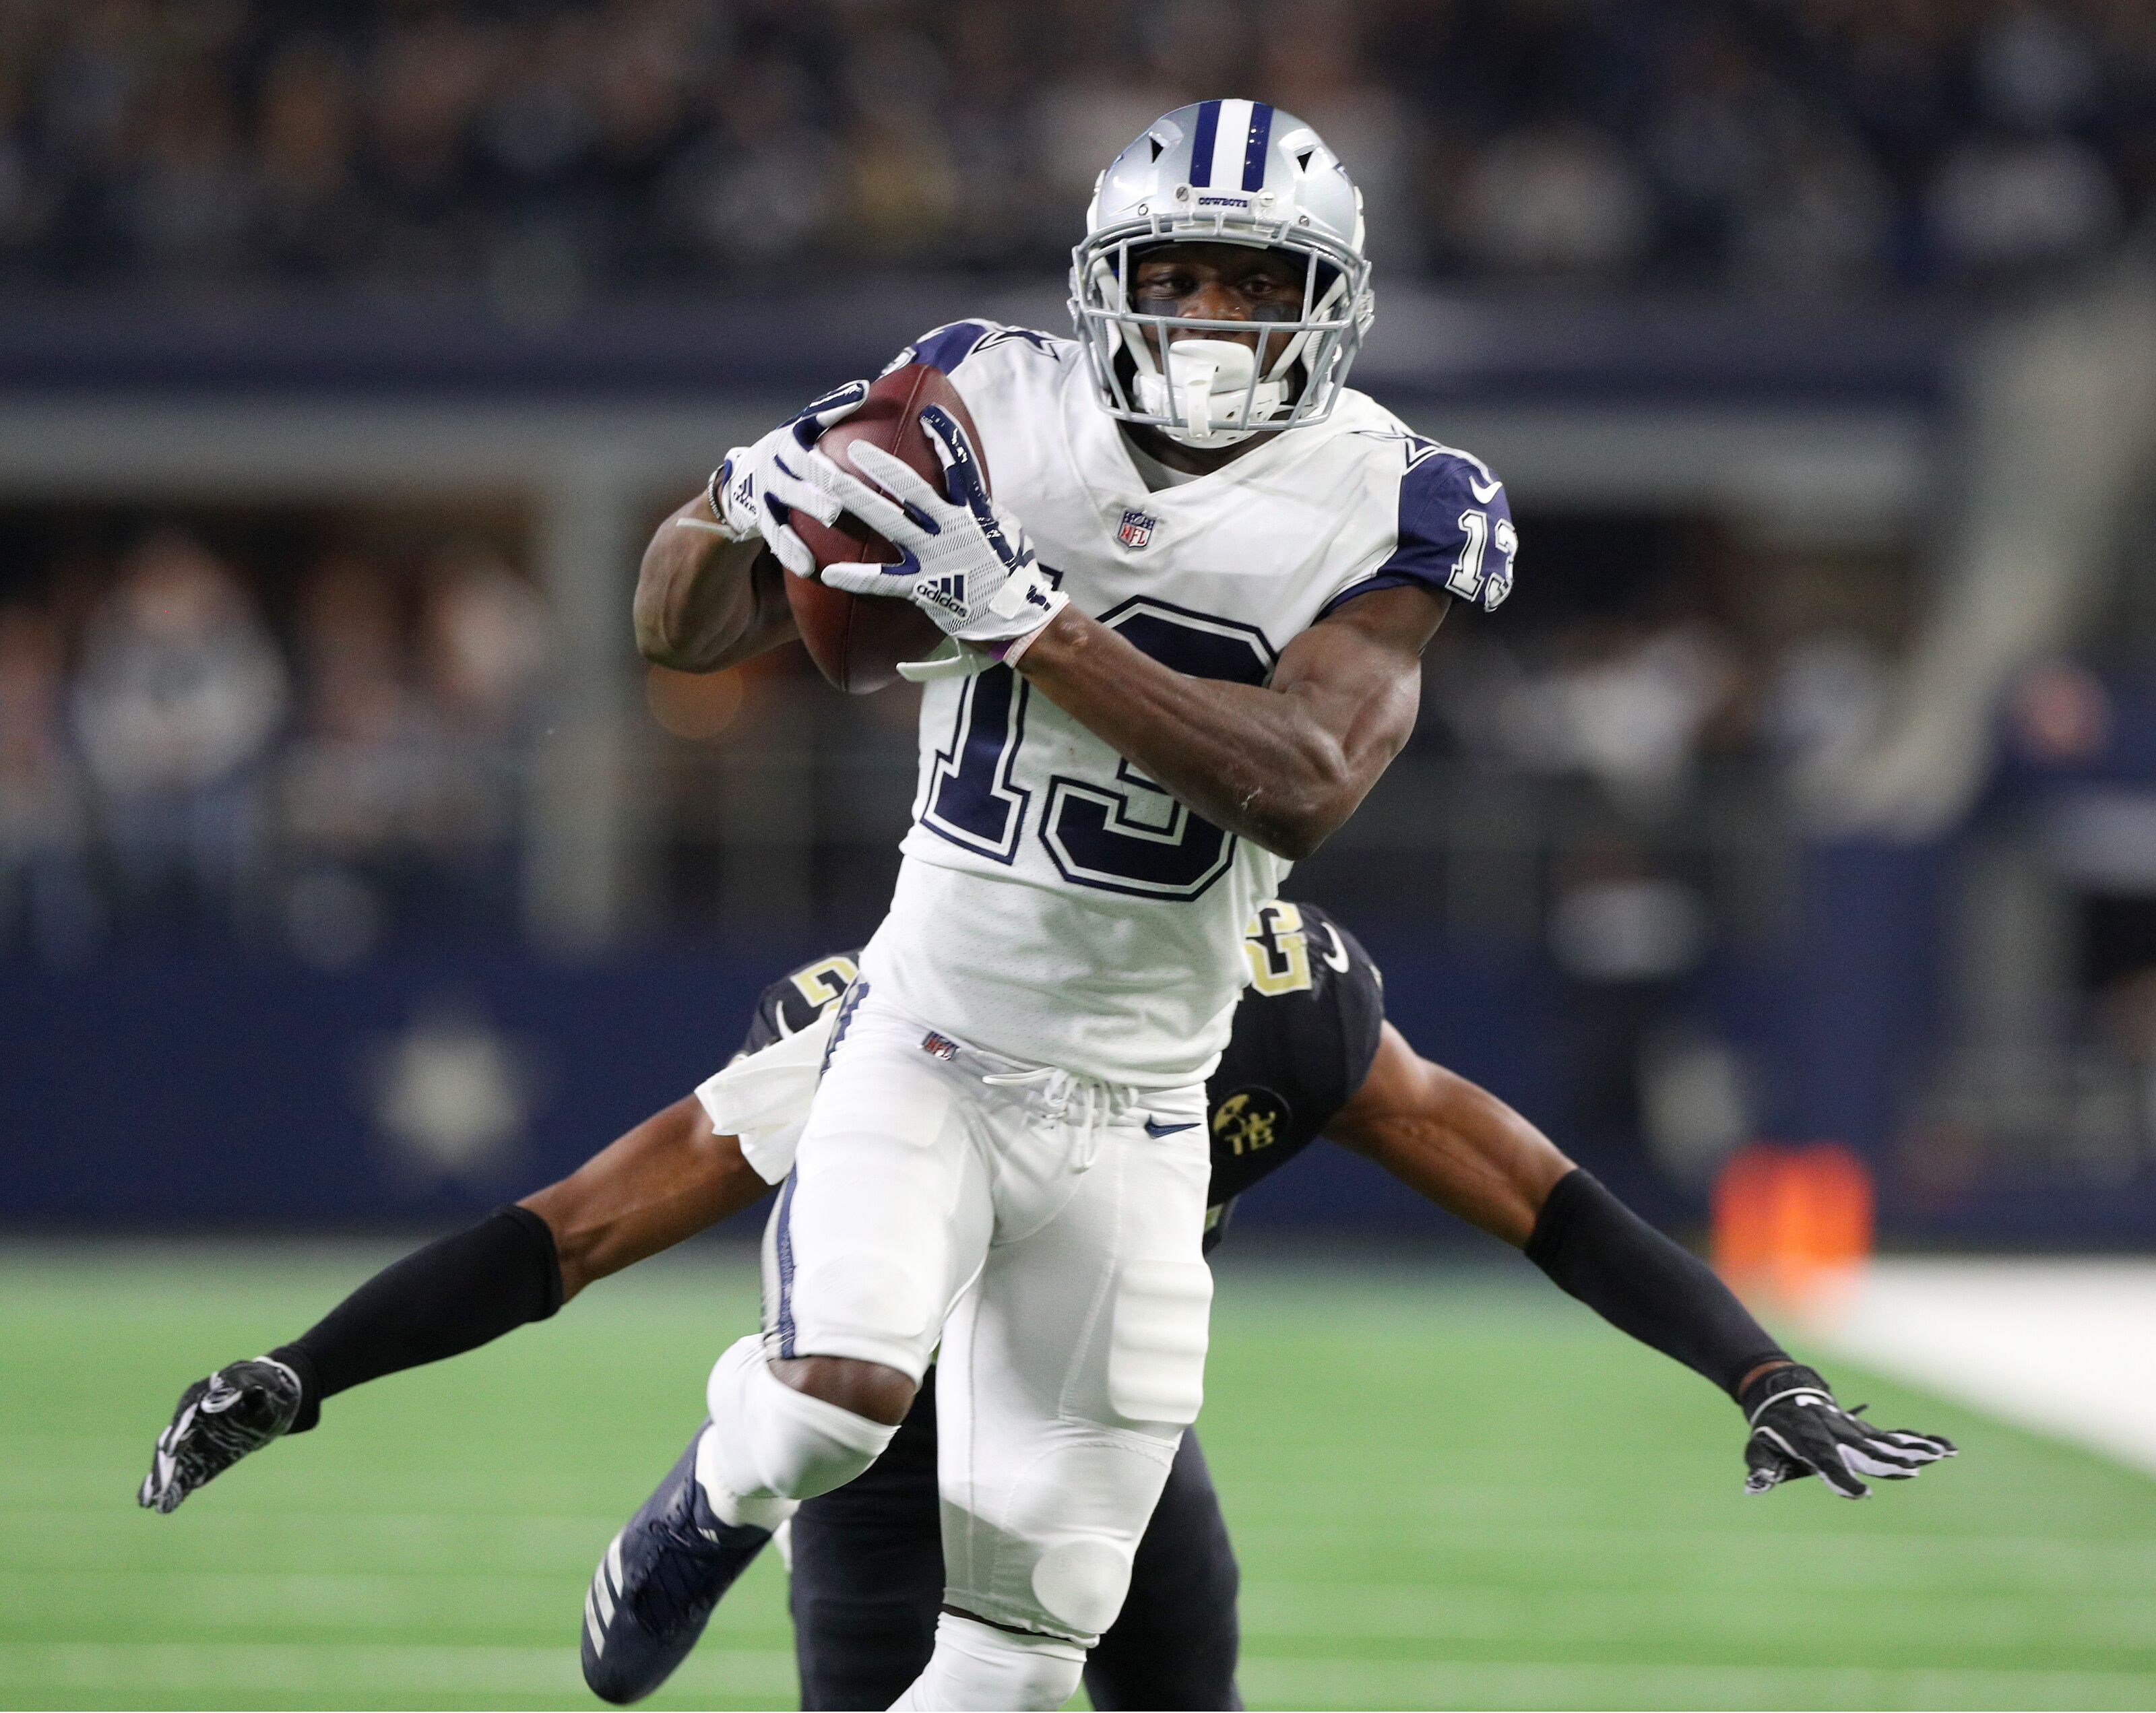 100% authentic 1bc69 20c53 Dallas Cowboys: Why Michael Gallup will lead the team in TDs ...